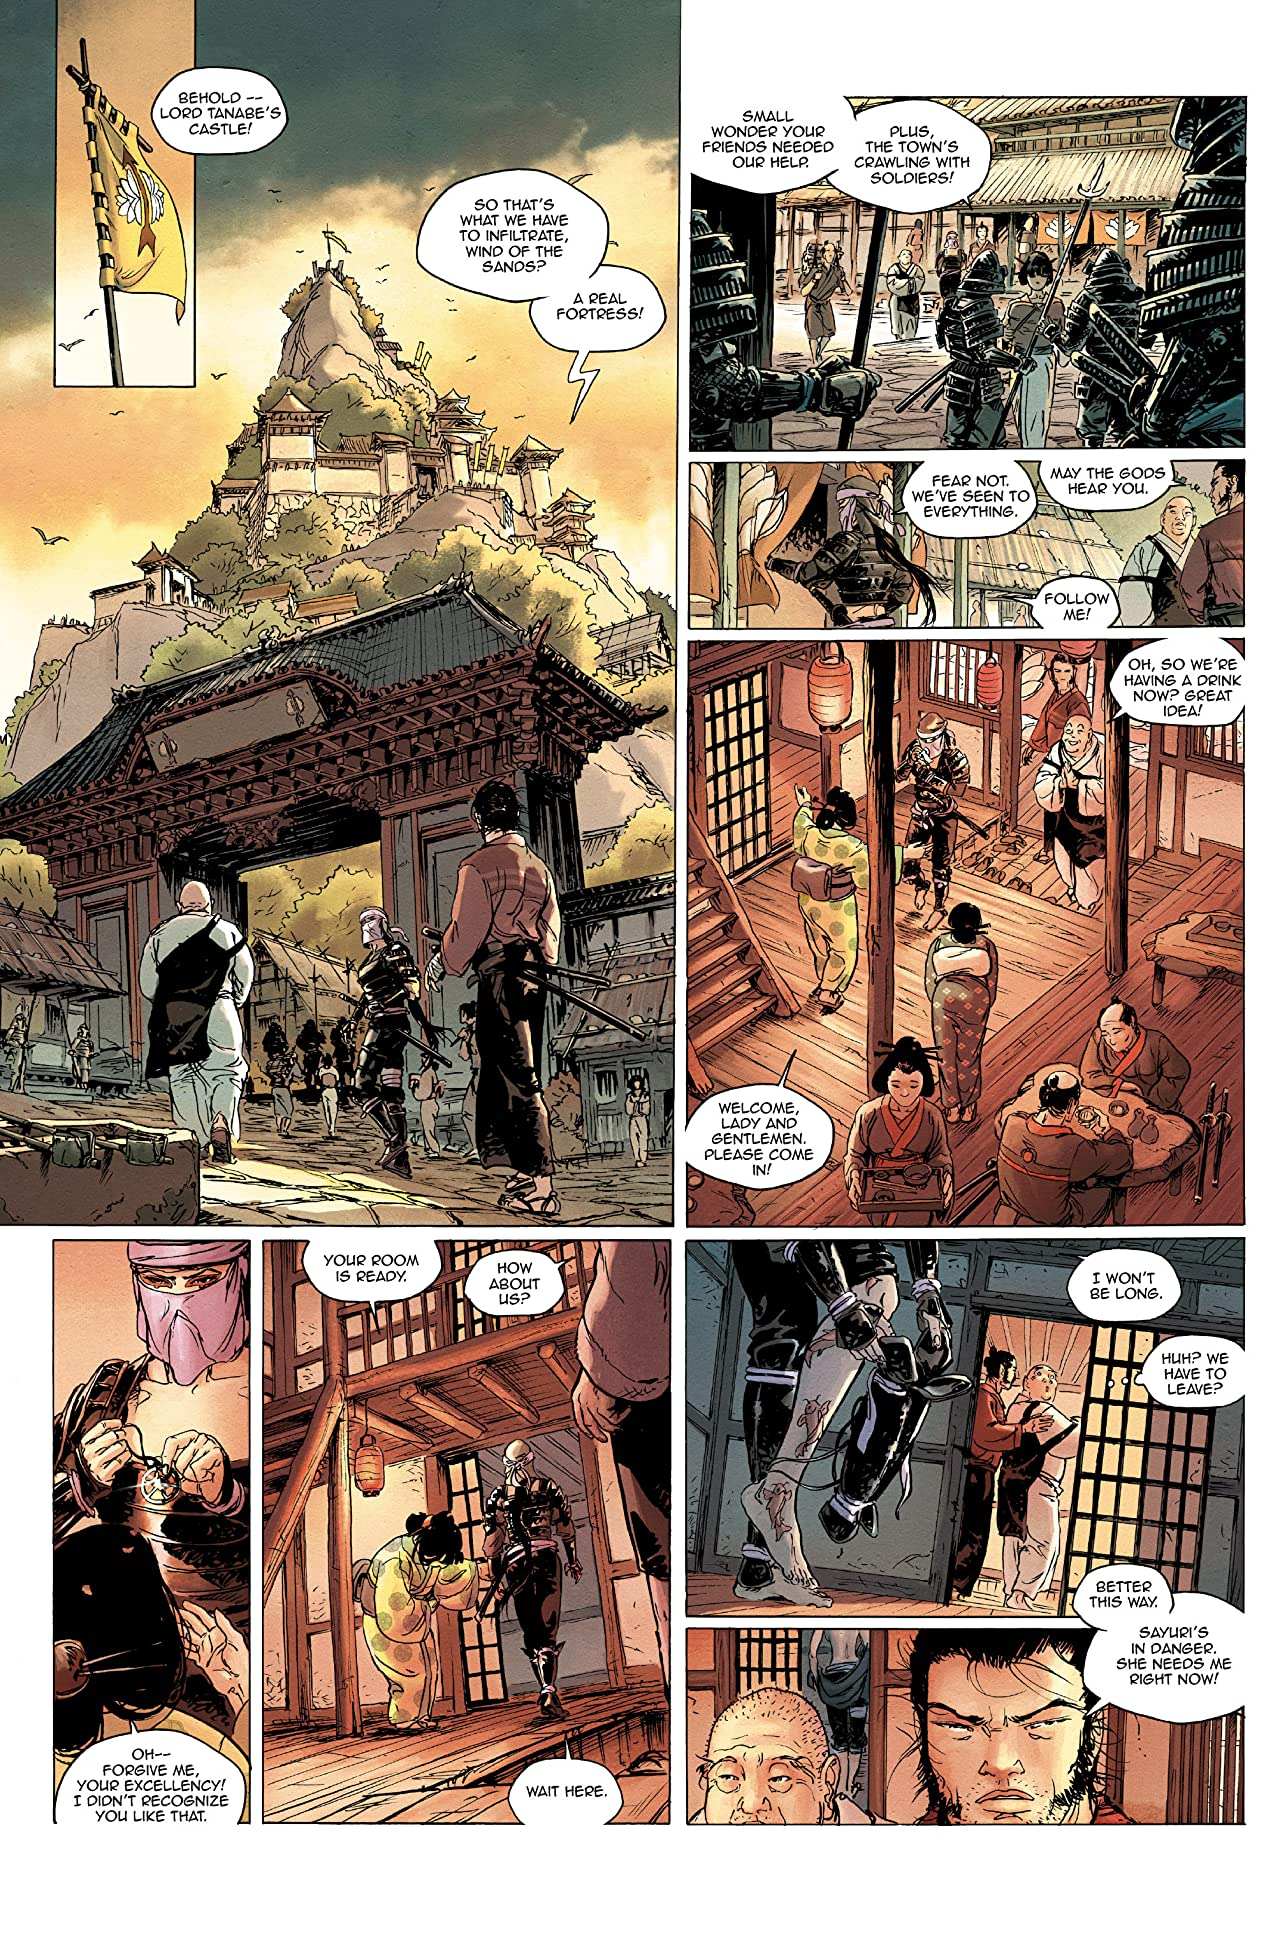 Samurai: Brothers in Arms #3